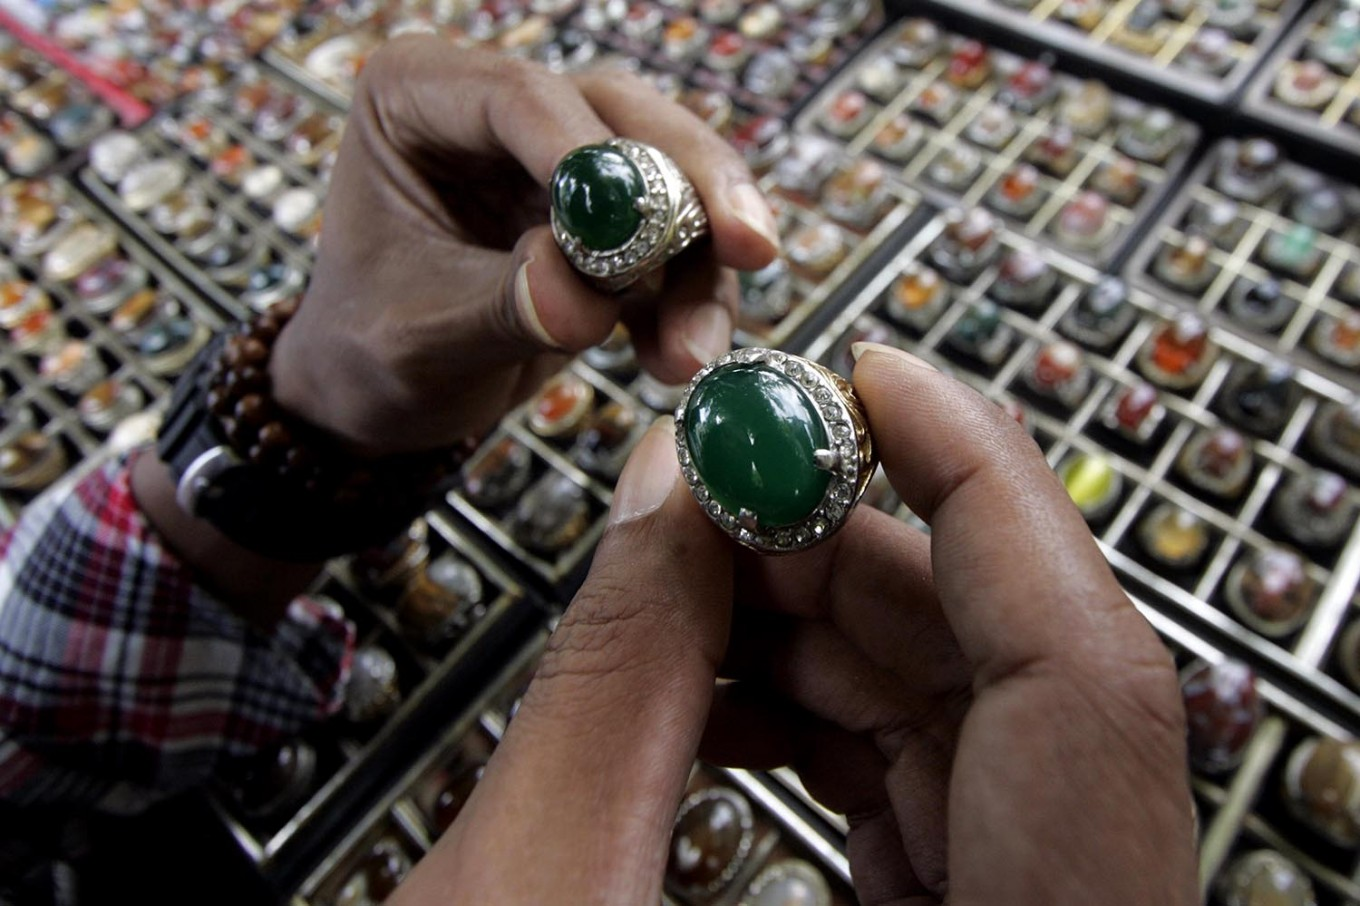 A potential buyer chooses two gemstones. JP/Boy T. Harjanto